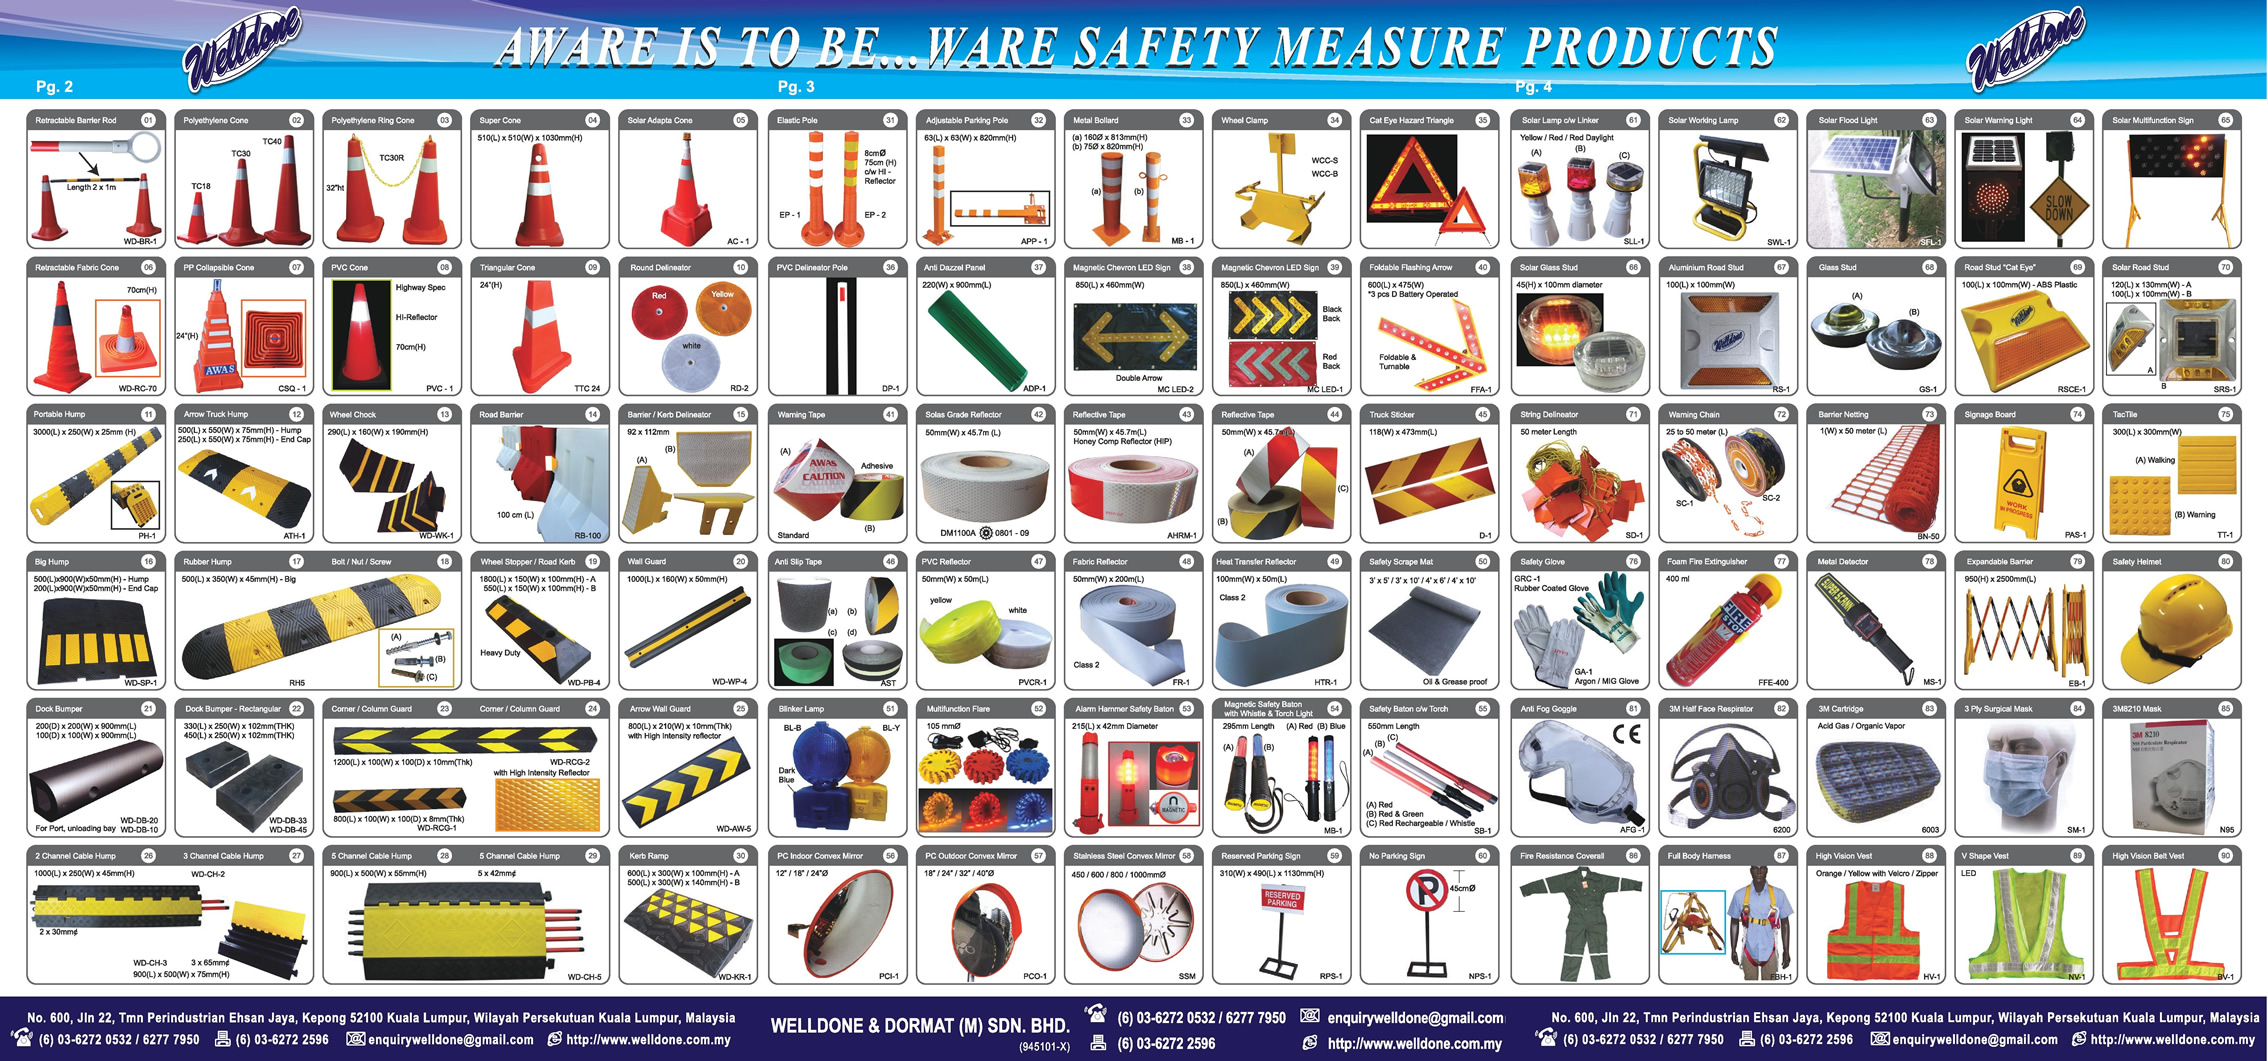 Traffic Safety Product Safety Accessories Washroom Product